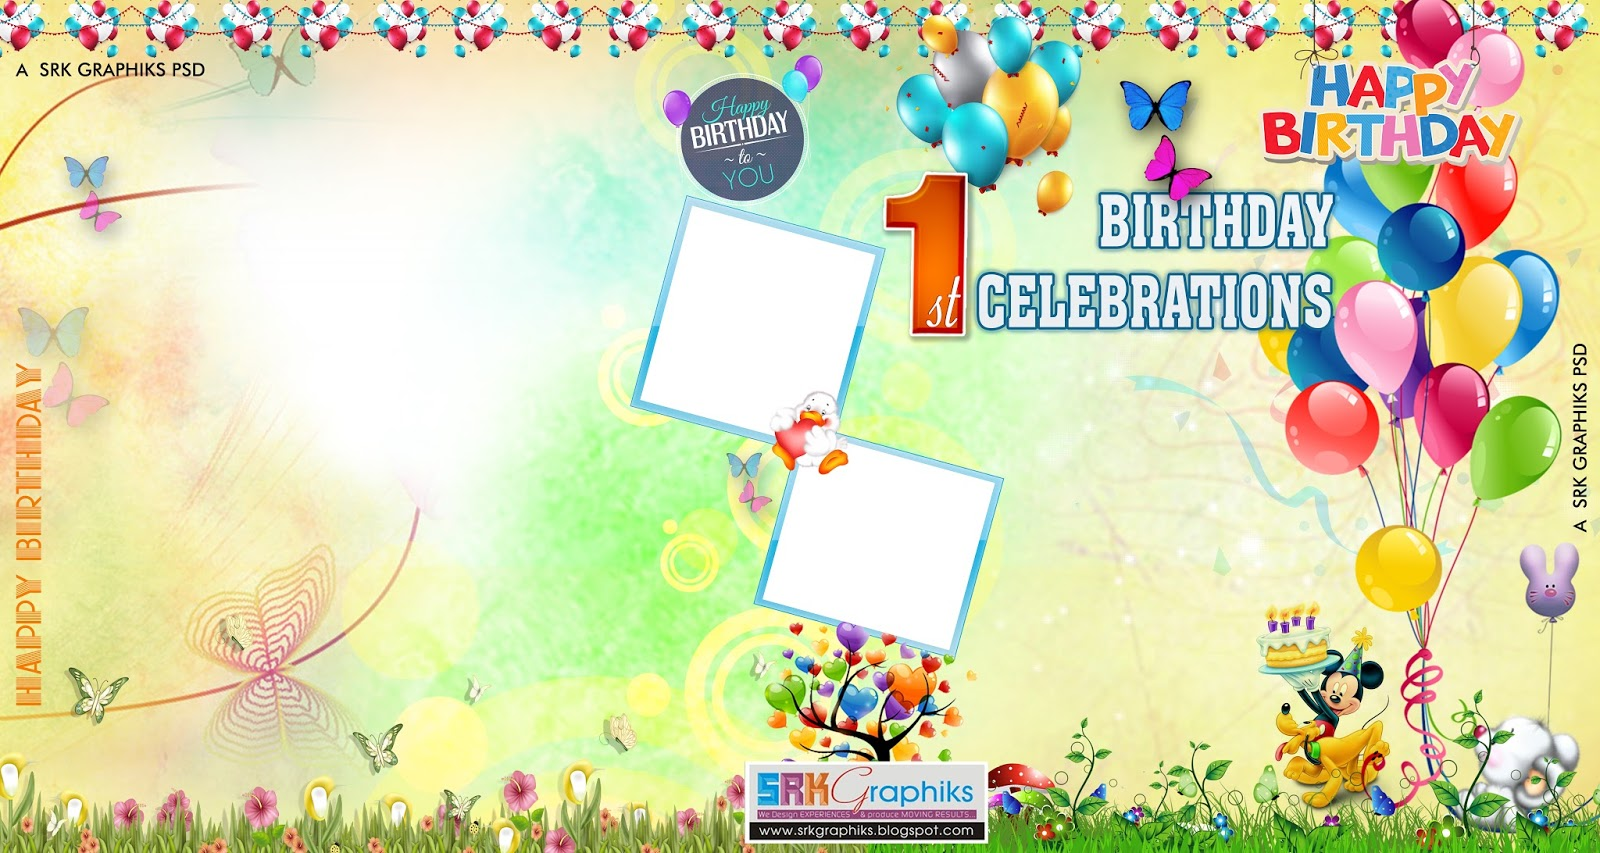 background images for birthday banner ; birthday-banner-background-psd-2